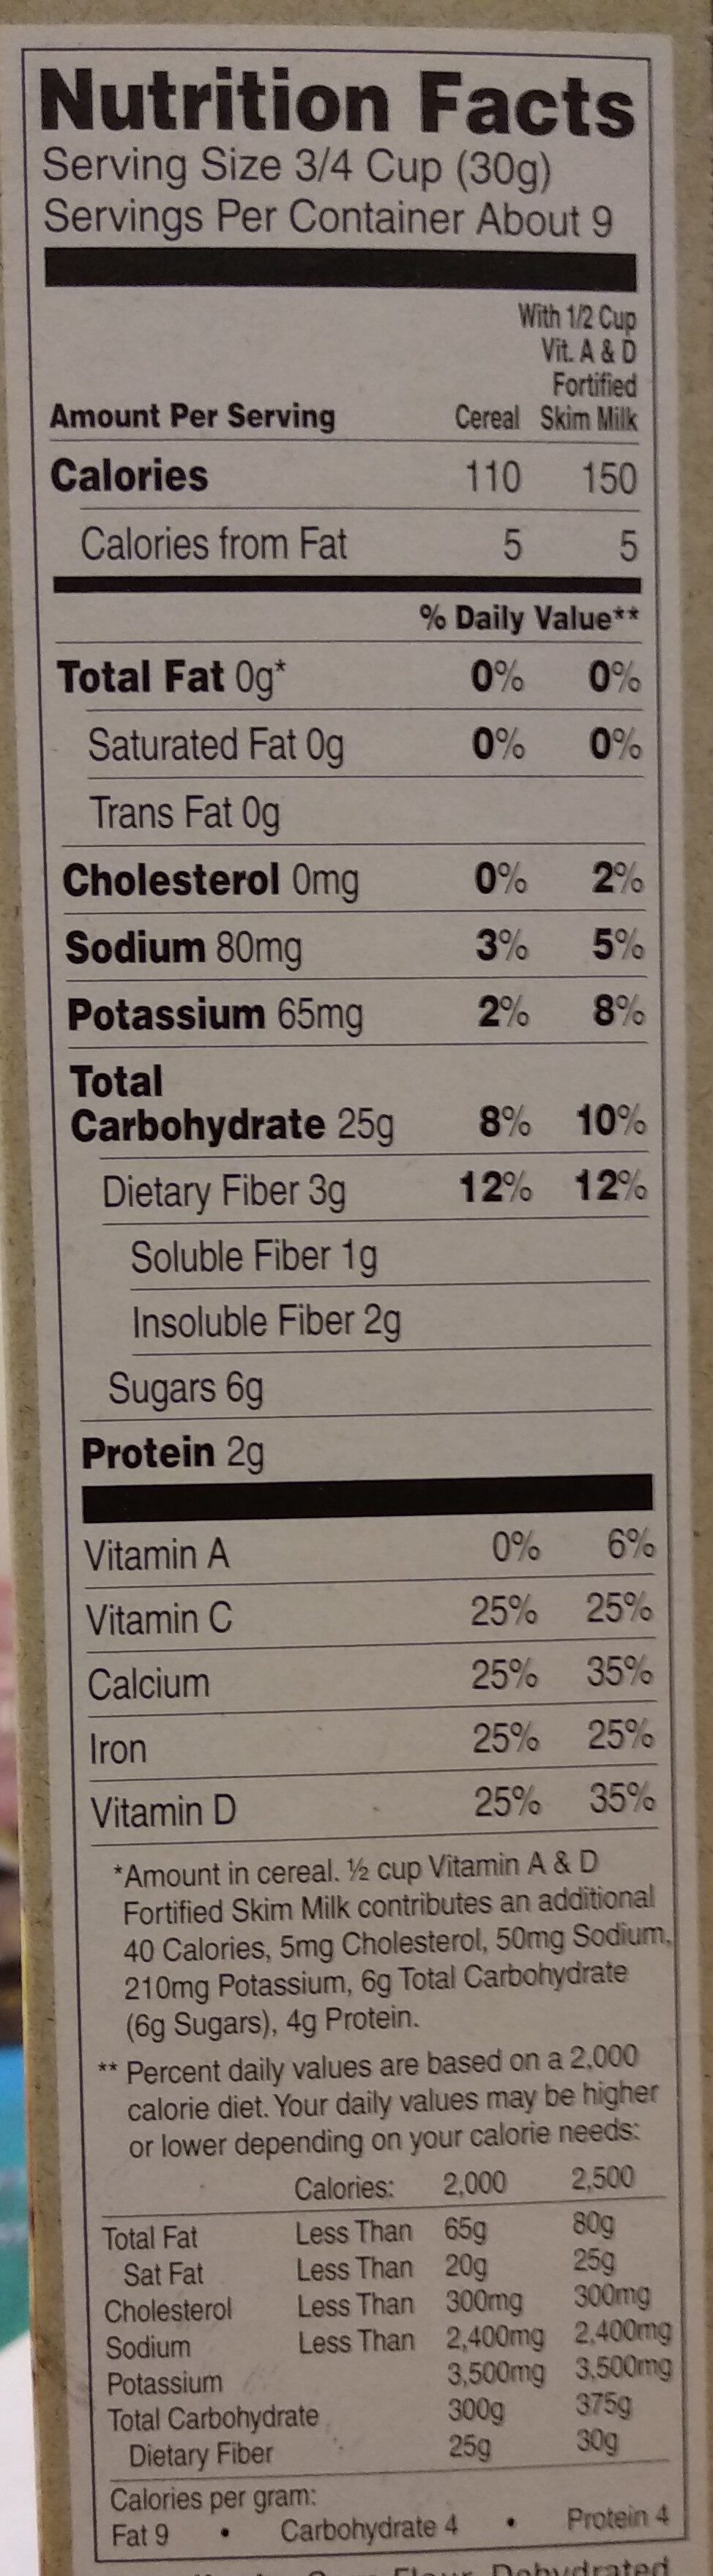 Multigrain Puffins Cereal - Nutrition facts